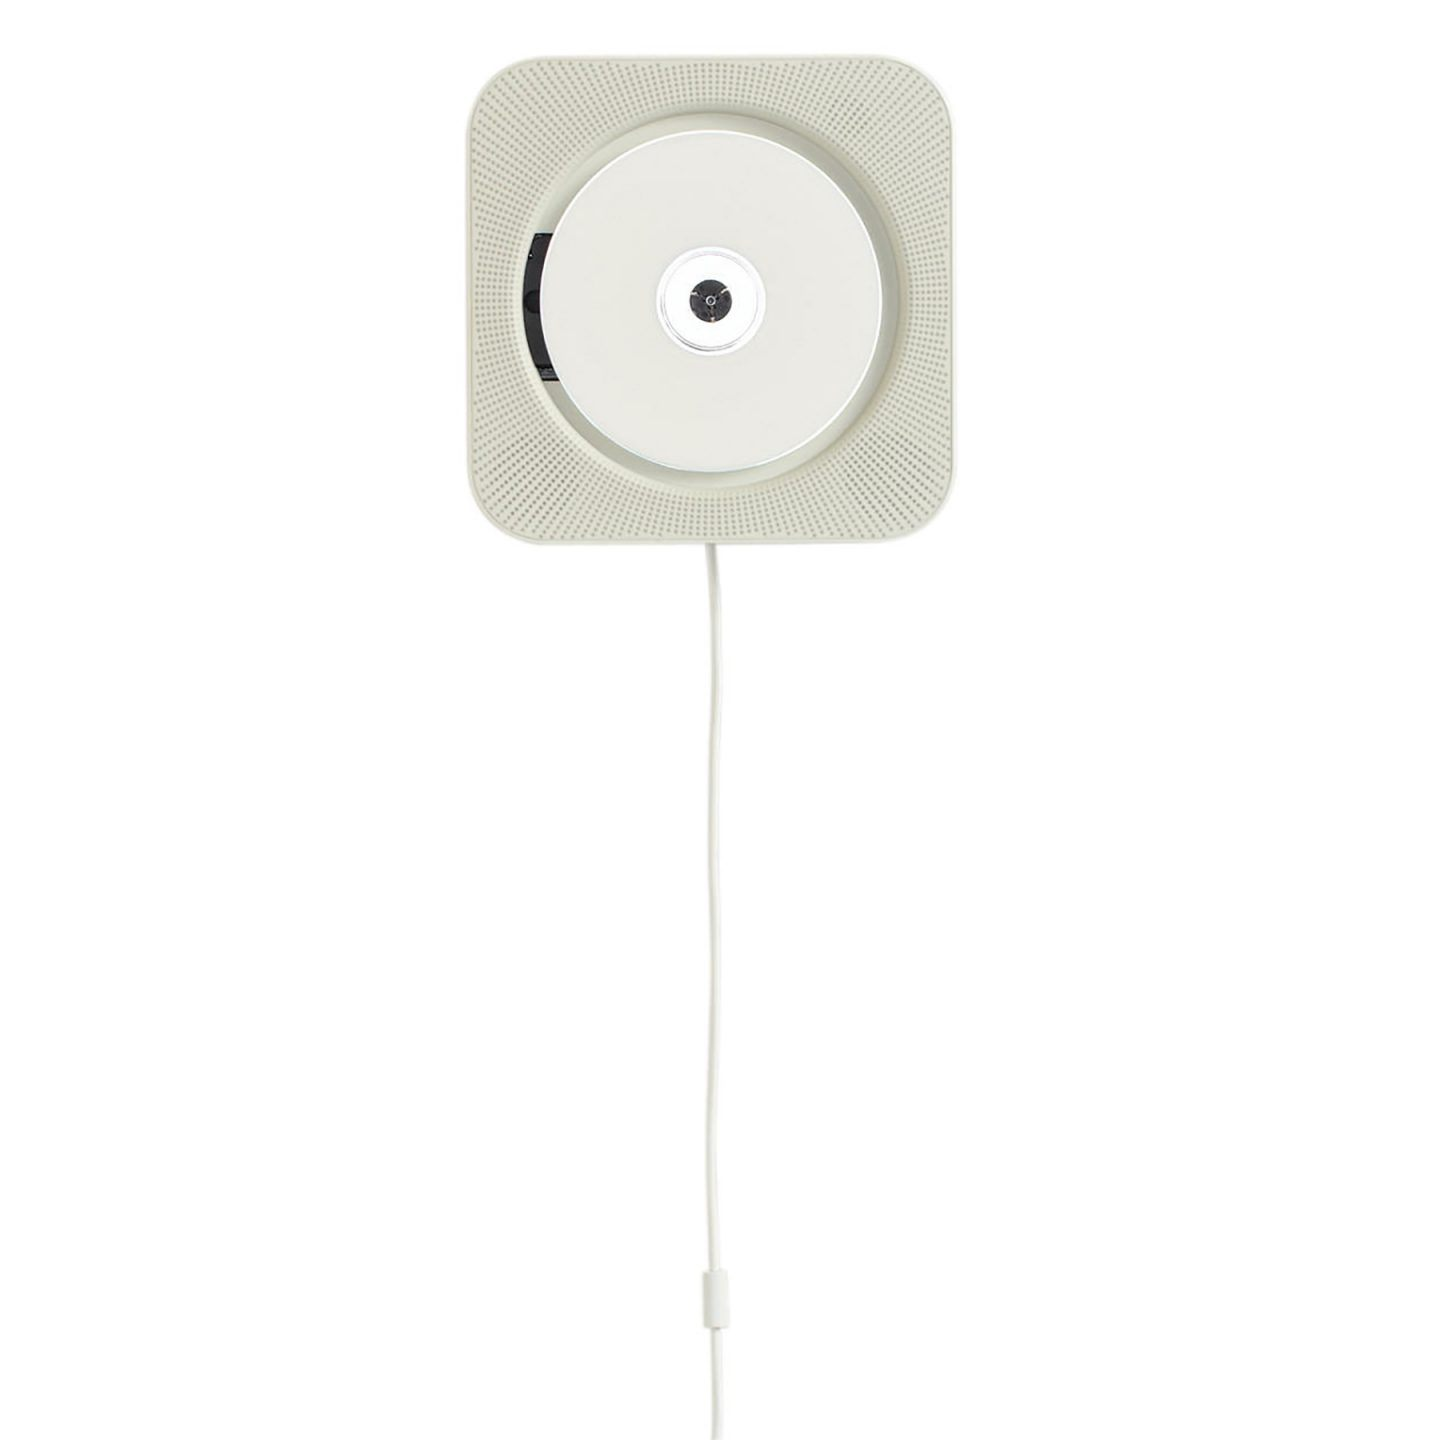 IGNANT-Design-Muji-Wall-Mounted-CD-Player-1